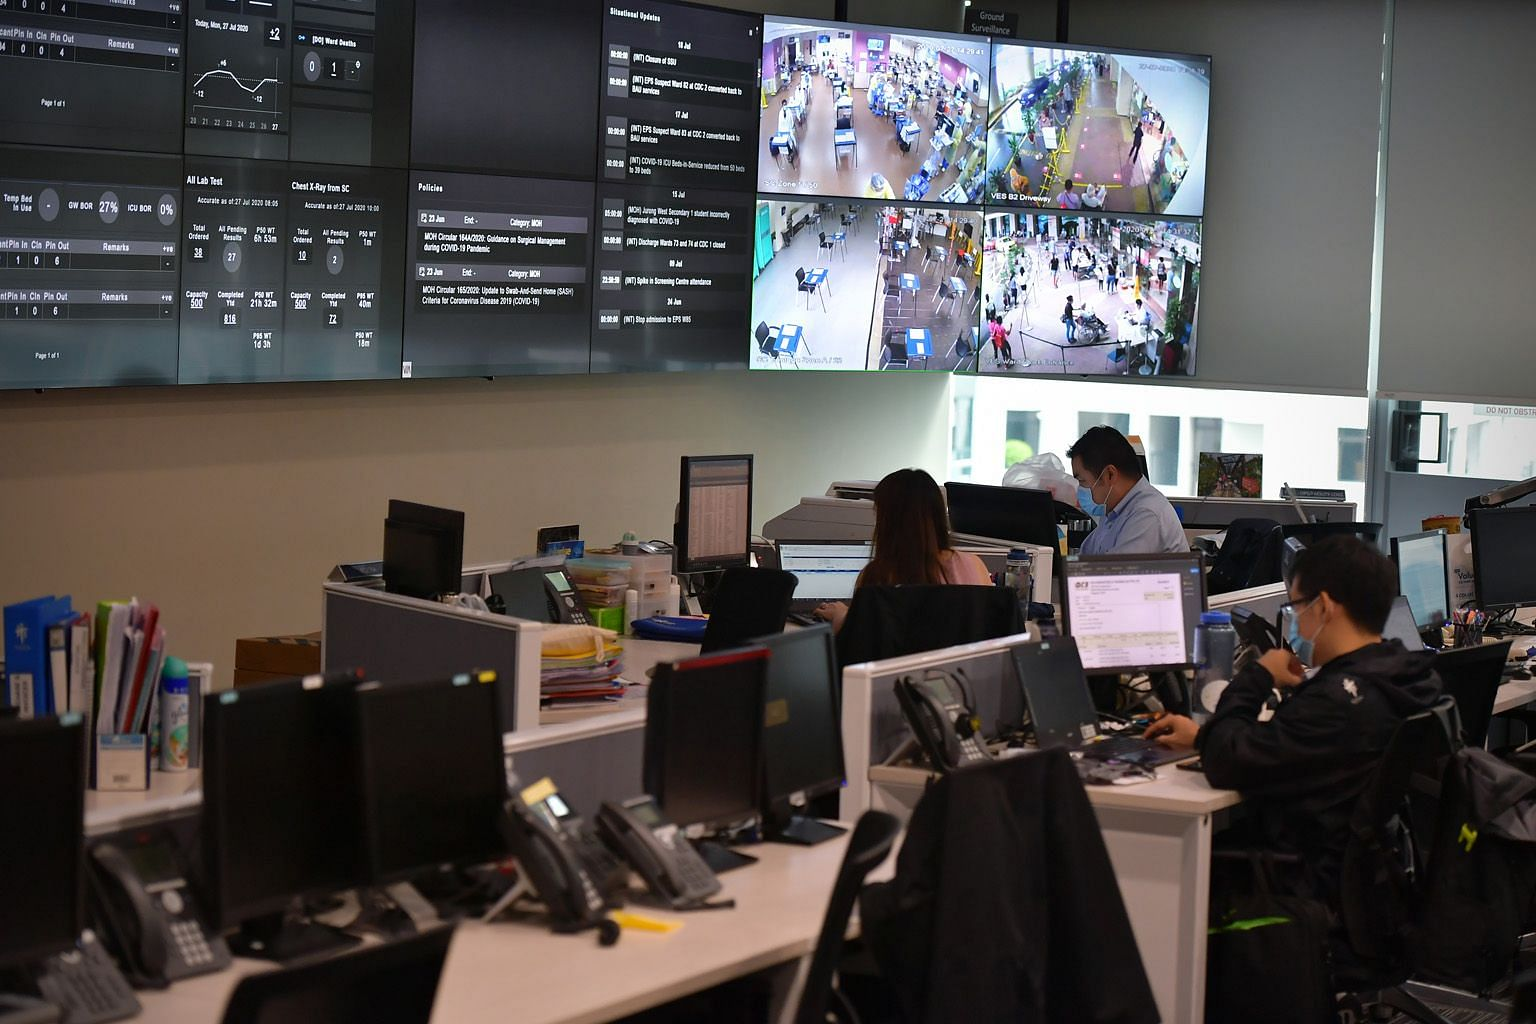 Tan Tock Seng Hospital's command, control and communications system at its operations command centre helps control the flow of resources across the hospital and the National Centre for Infectious Diseases. ST PHOTO: NG SOR LUAN